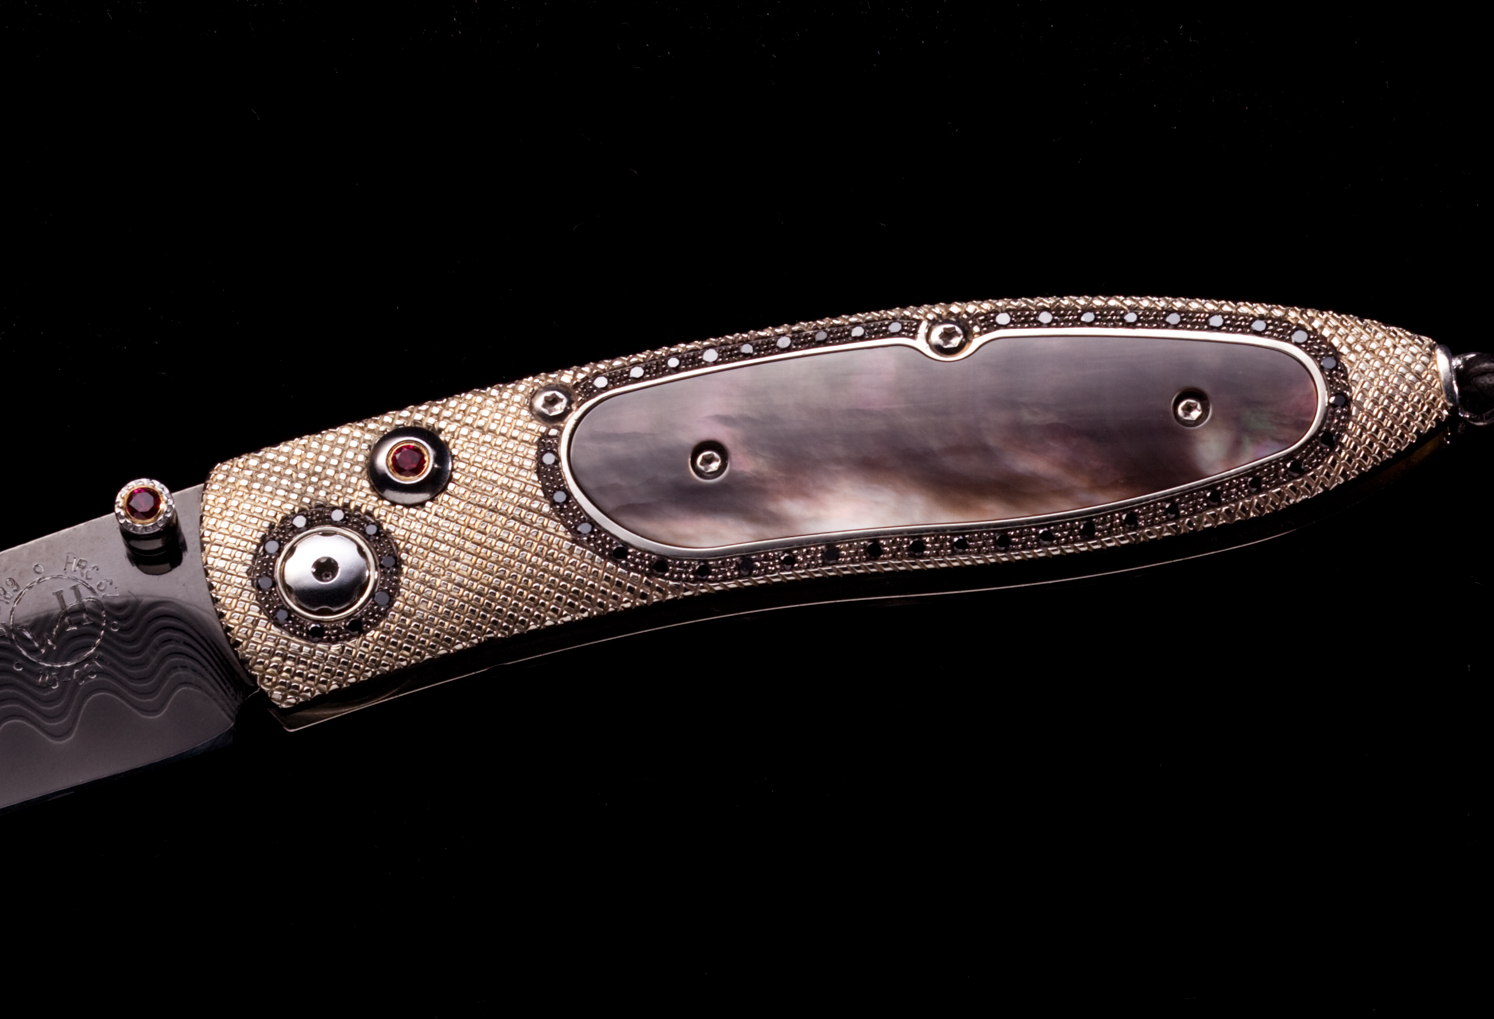 The B05 'Monarch' pocketknife inlaid with black lip pearl and 100 black diamonds (1.18K).